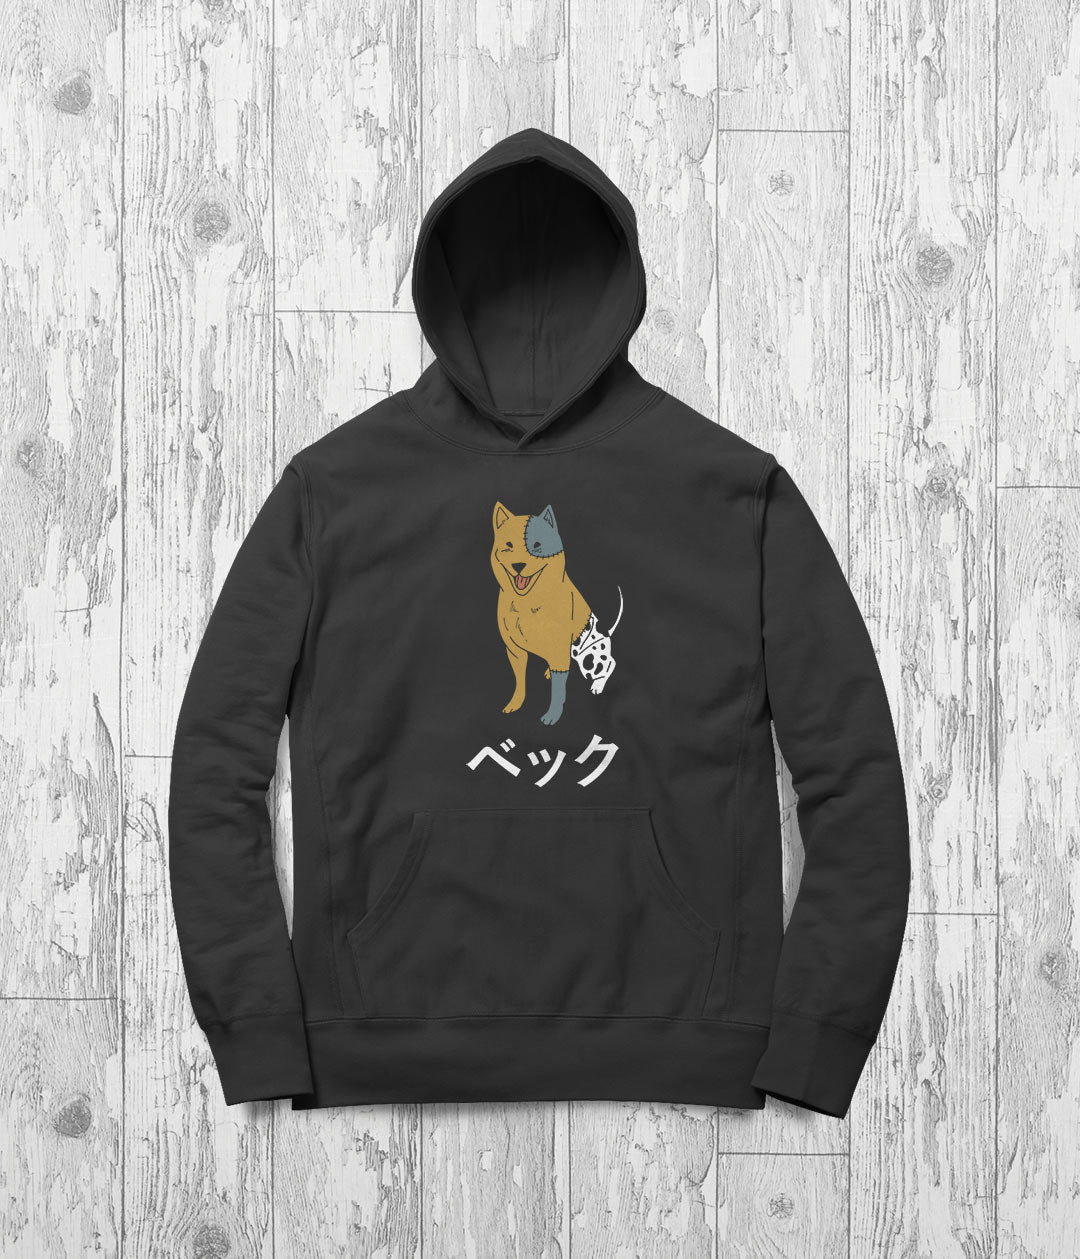 Anime dog printed on a hoodie with the katakana for Beck